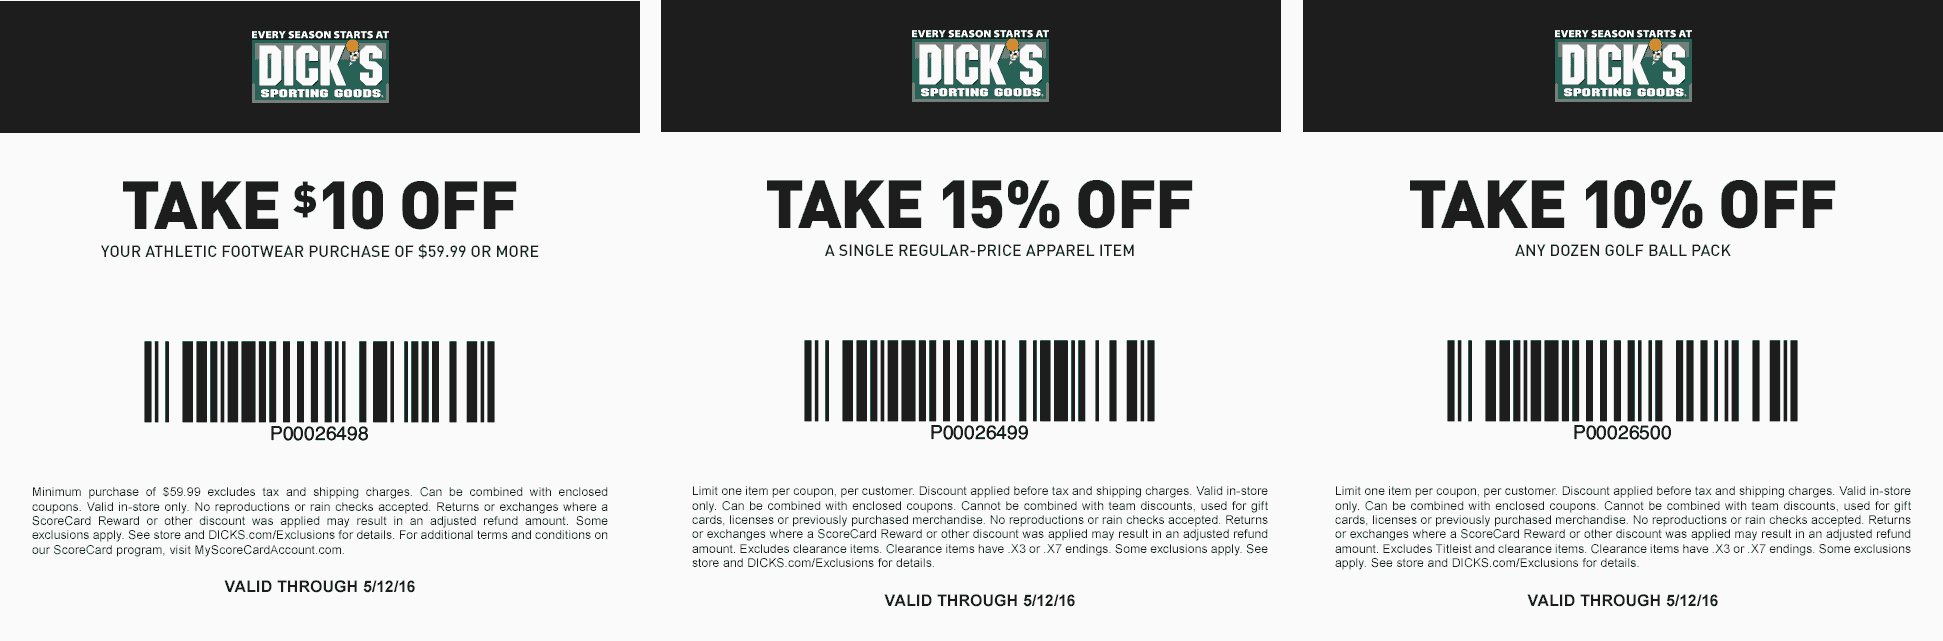 Dicks Coupon January 2018 $10 off $60 on footwear & more at Dicks sporting goods